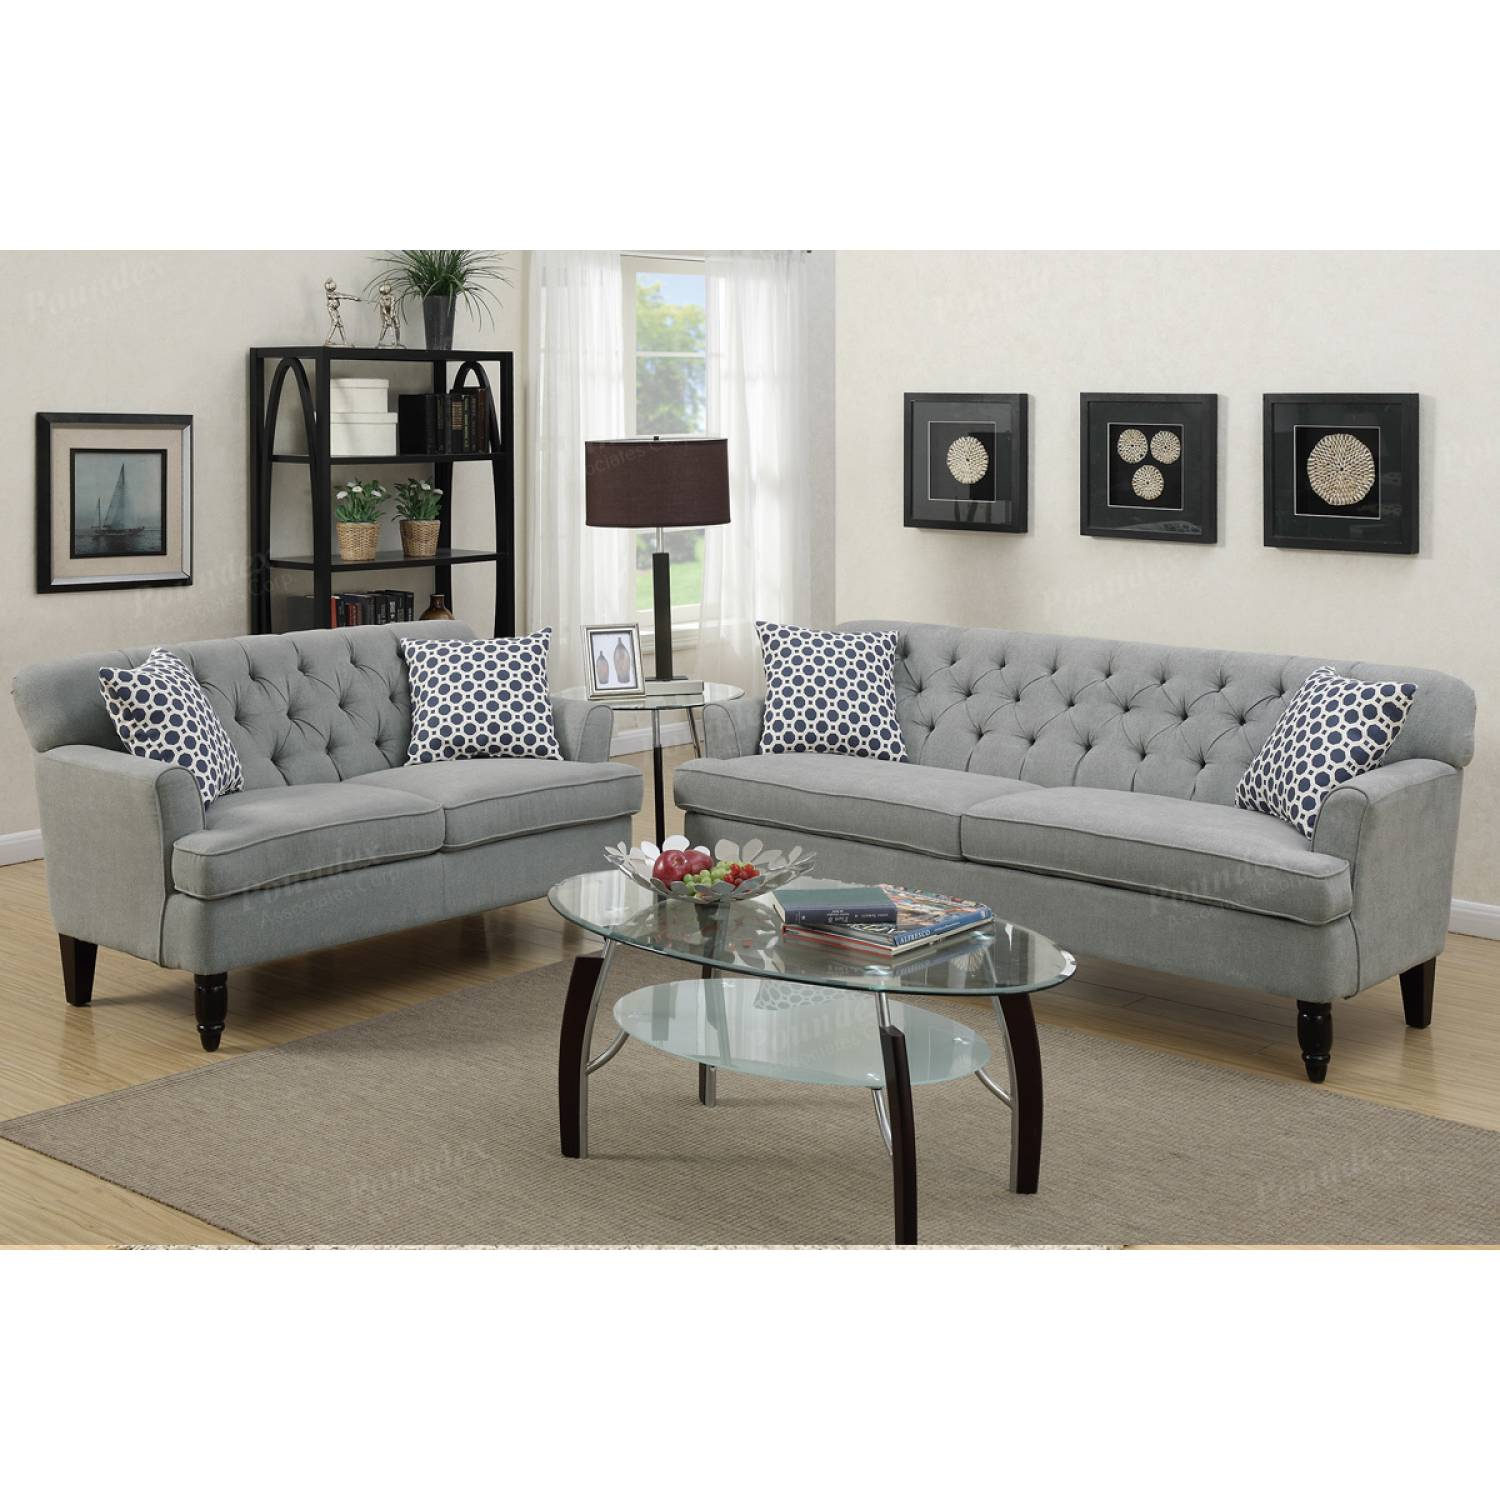 2 Pcs Sofa Set F6940